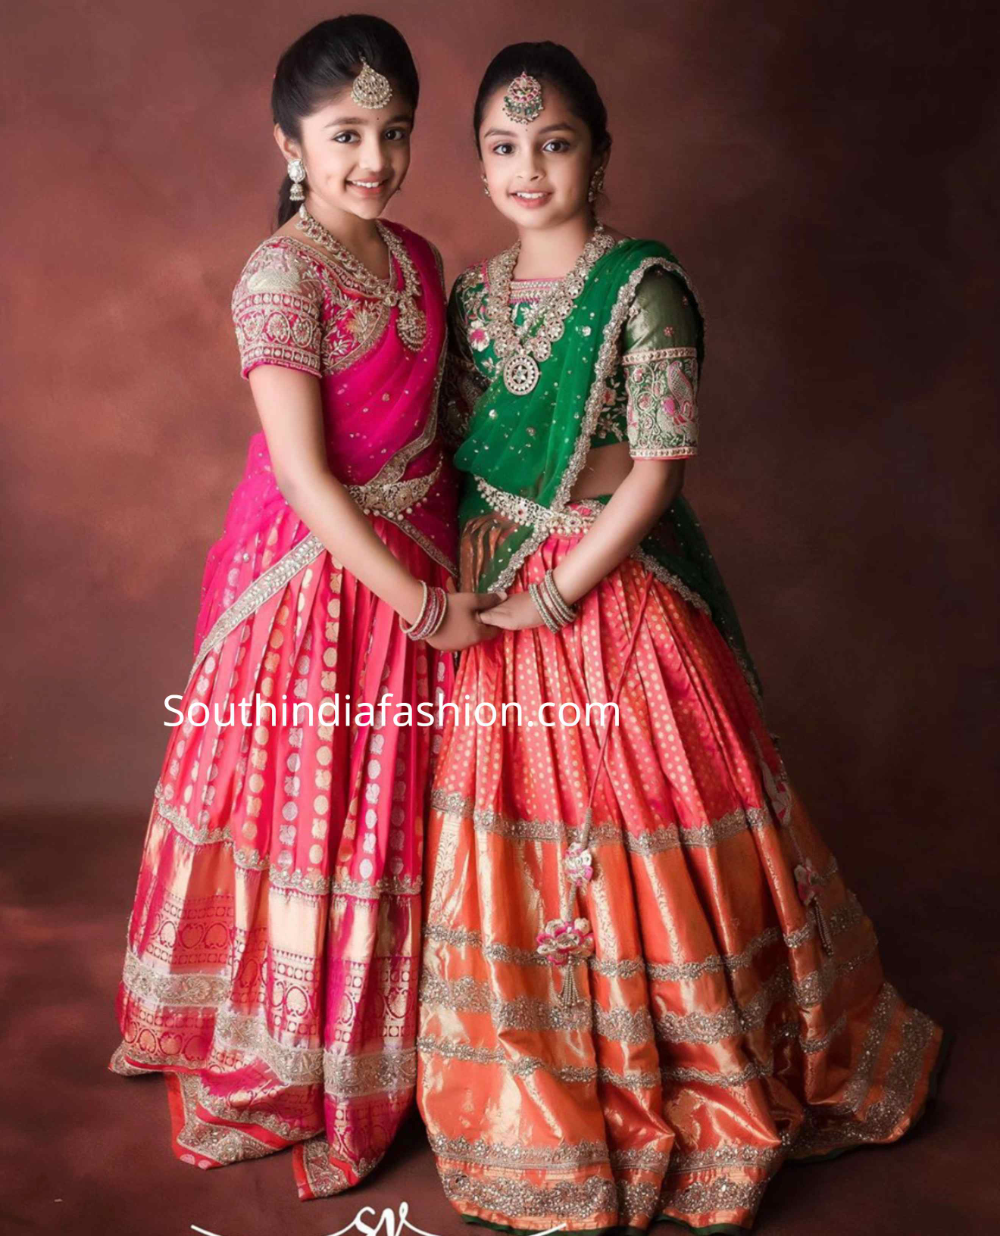 Viranica Manchu And Her Kids In Traditional Outfits At A Wedding Half Saree Designs Kids Blouse Designs Half Saree Lehenga